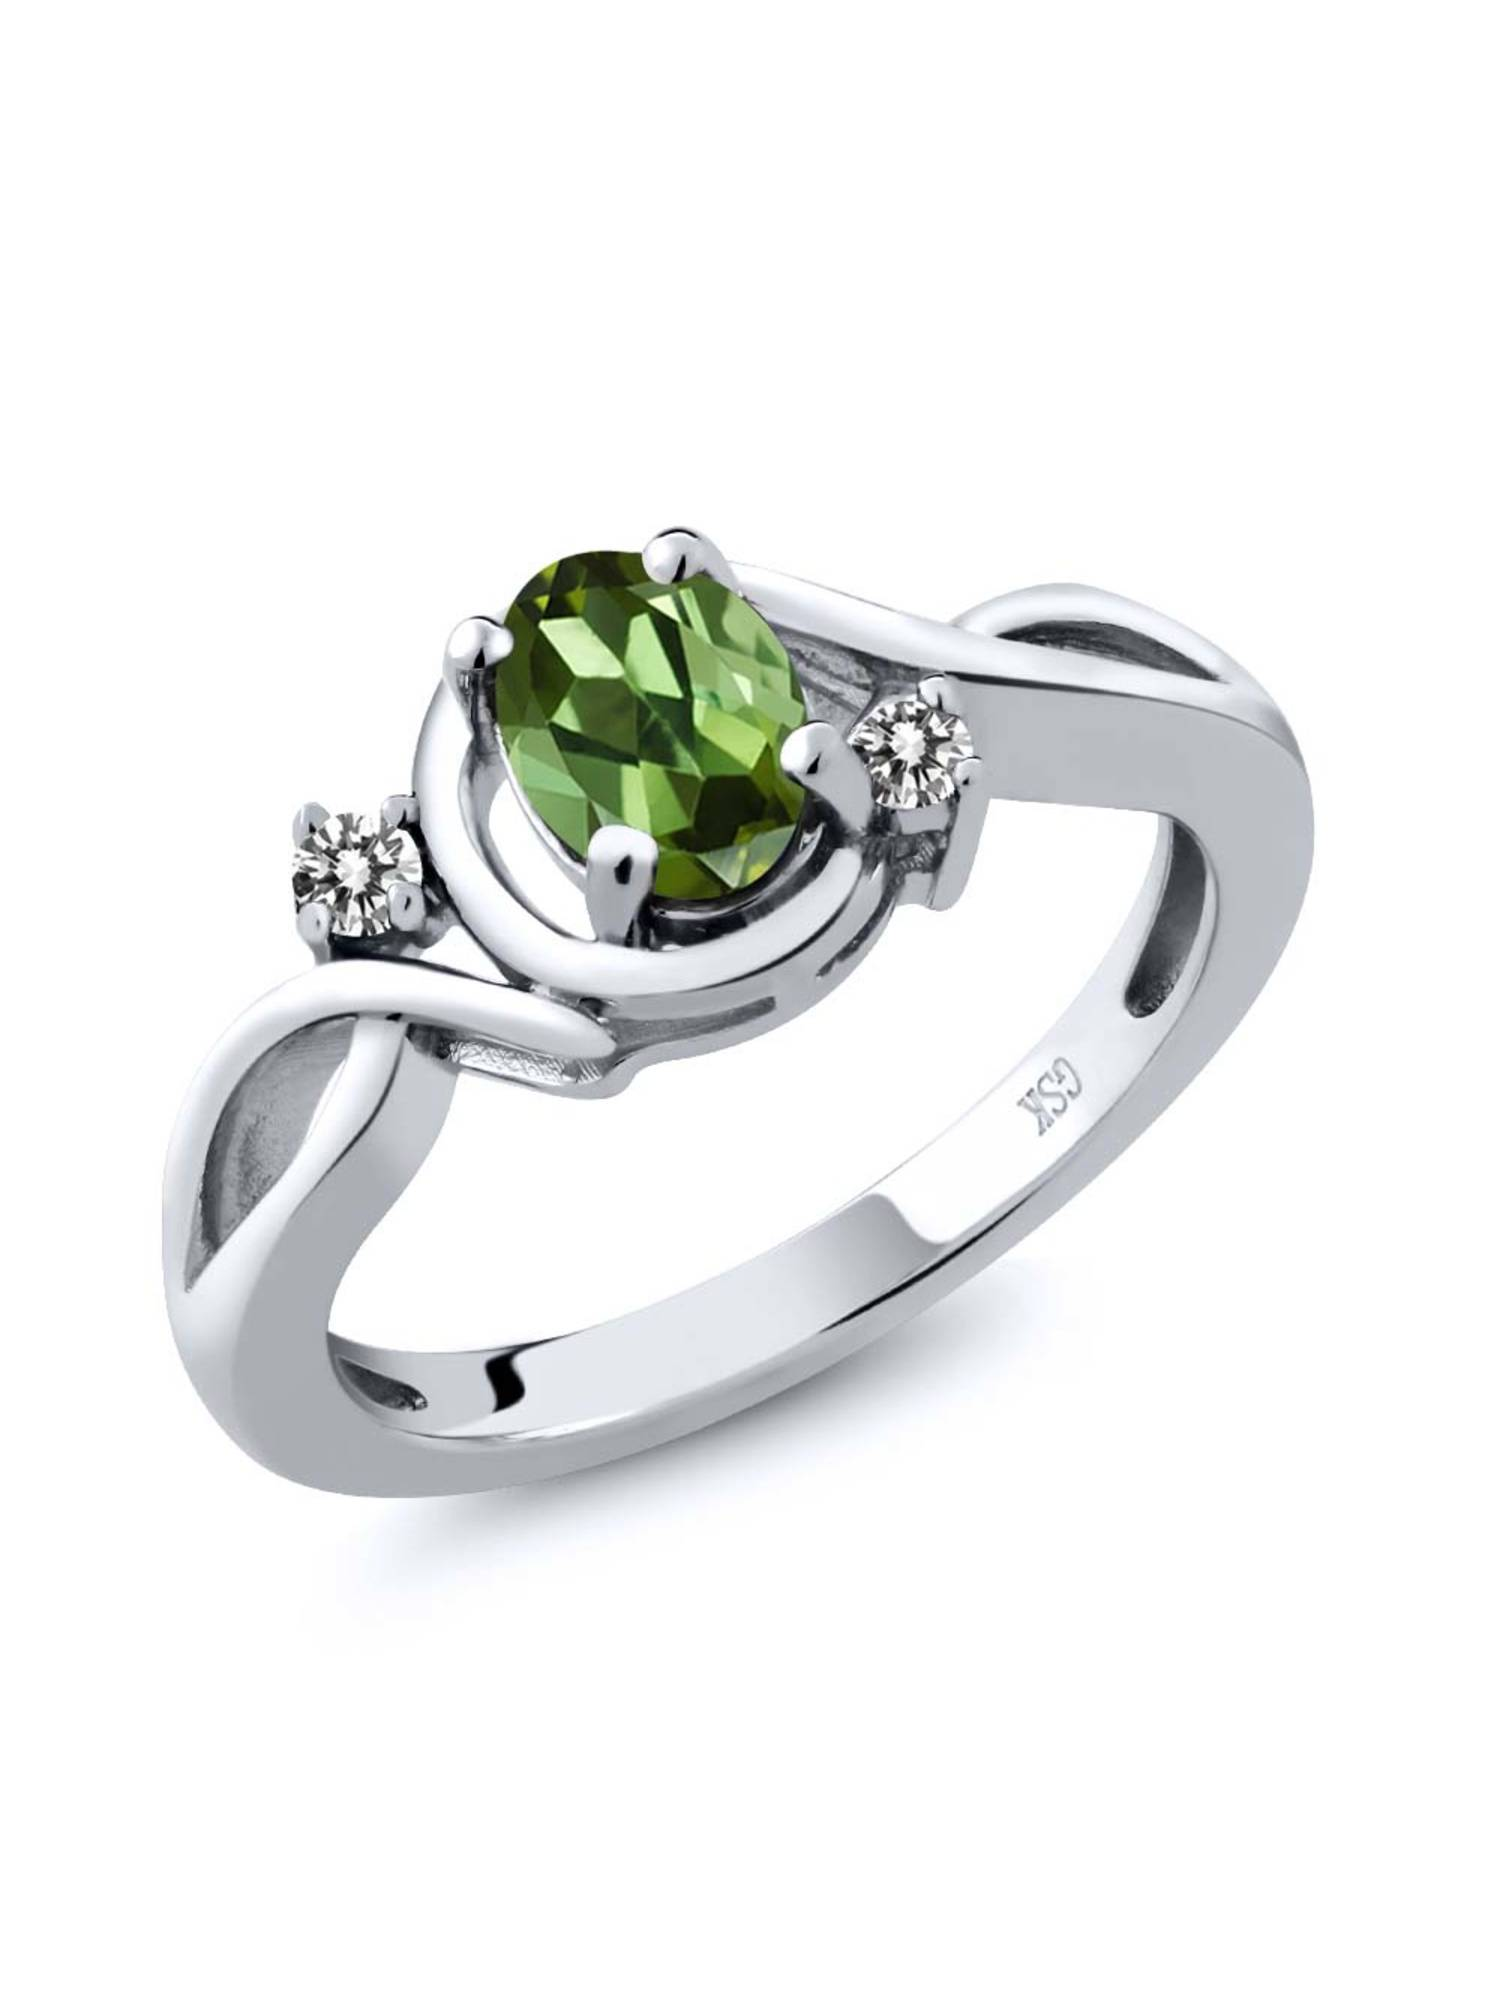 0.77 Ct Oval Green Tourmaline White Diamond 925 Sterling Silver Ring by